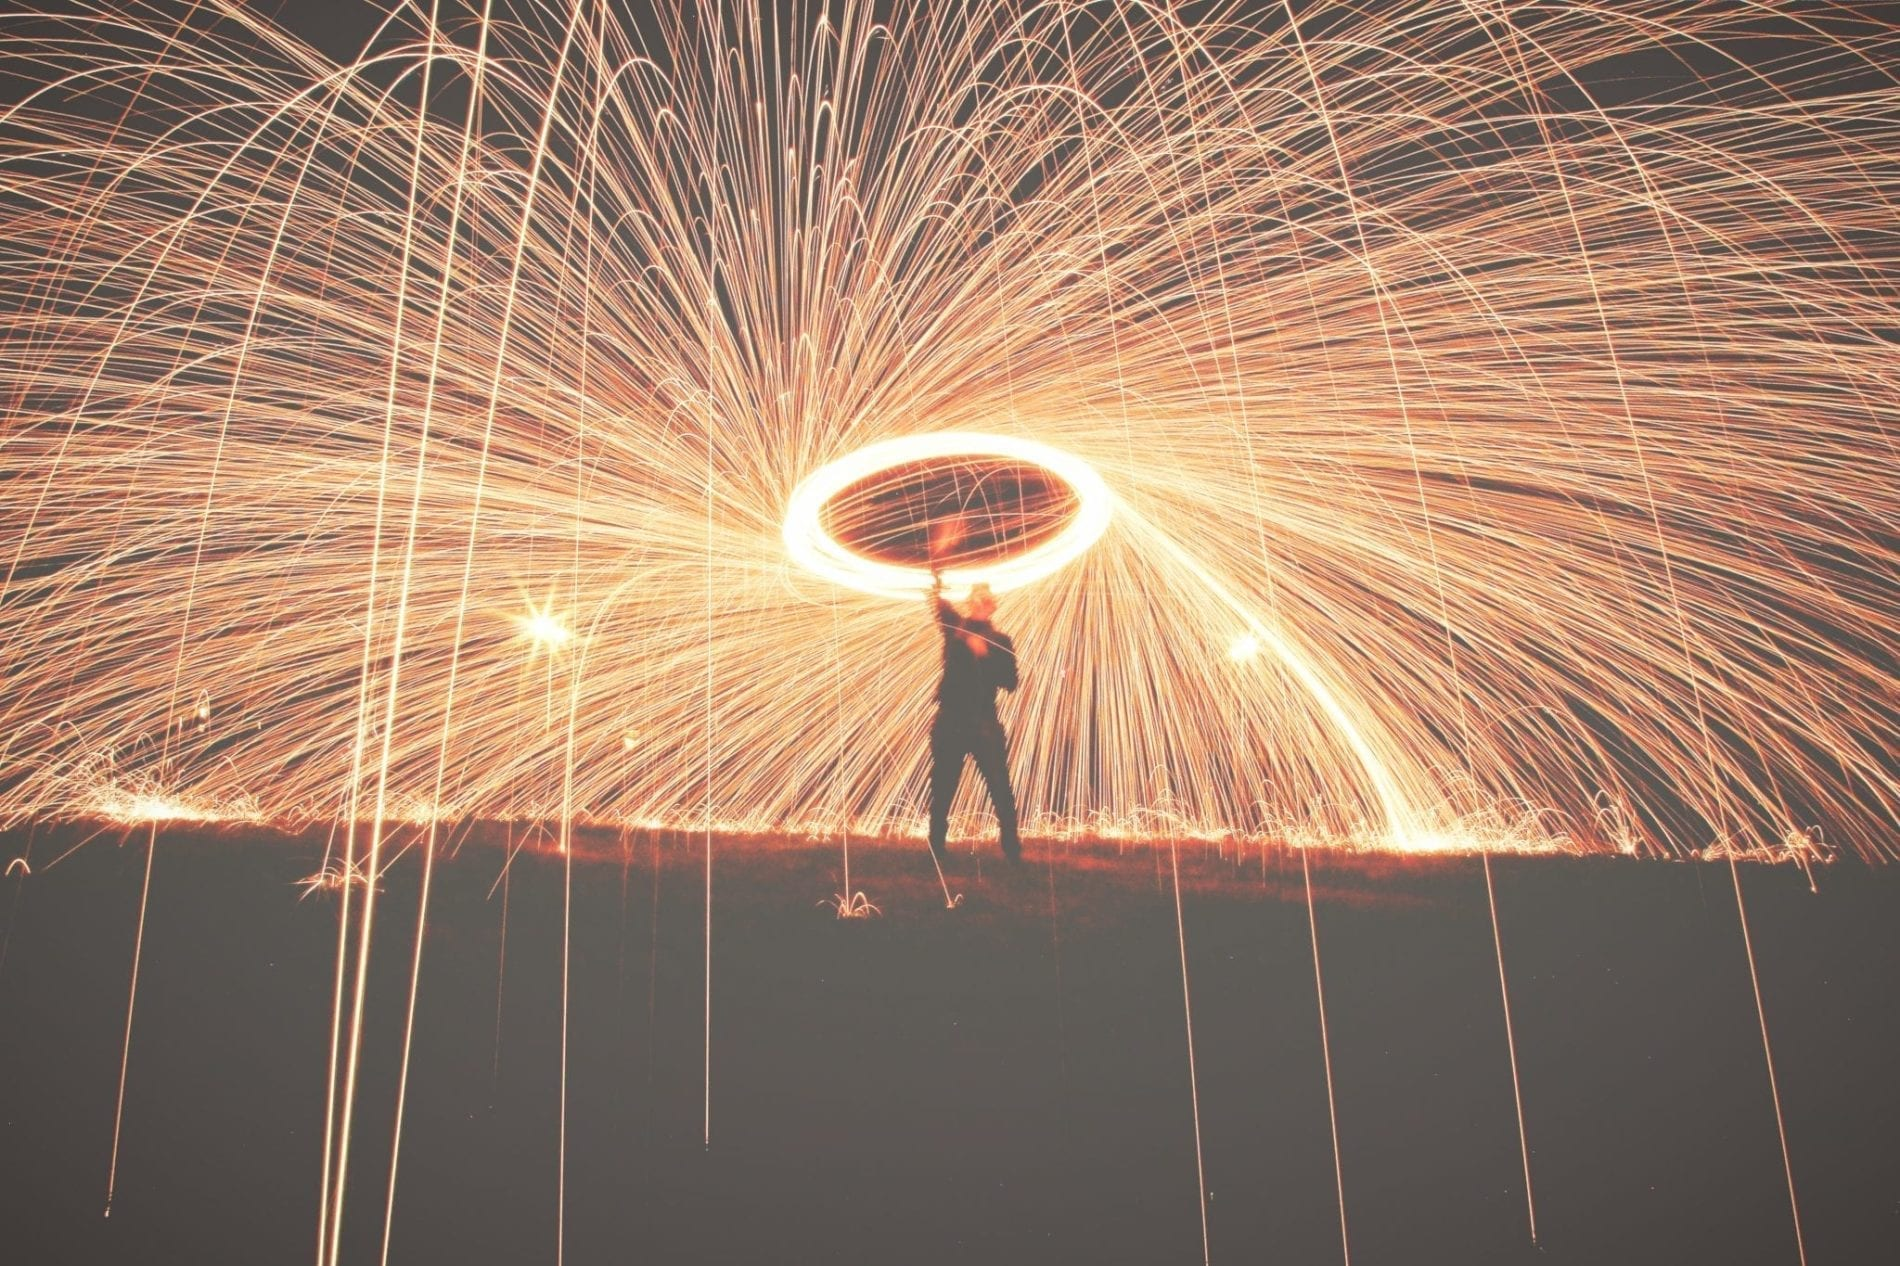 Rain of sparks from a sparkler